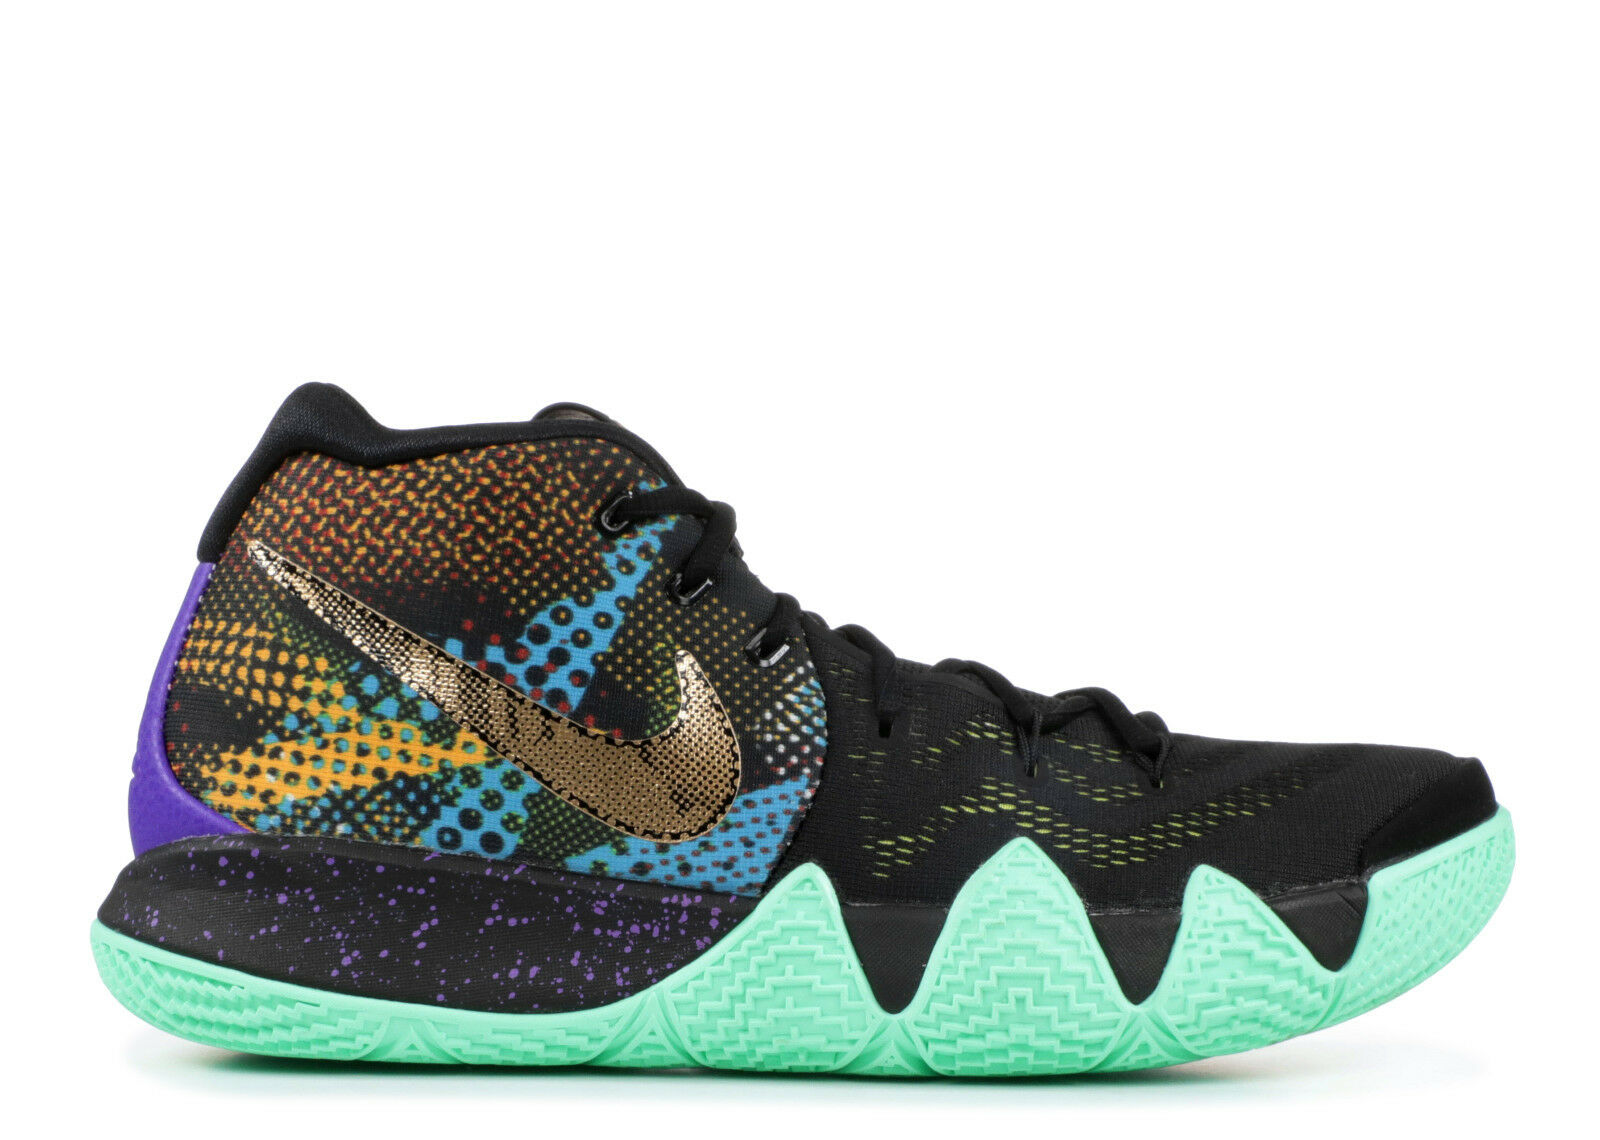 Nike Kyrie 4 MAMBA Mentality Black Mint Green GOLD MultiCOLOR WTK Men's 13 Shoes